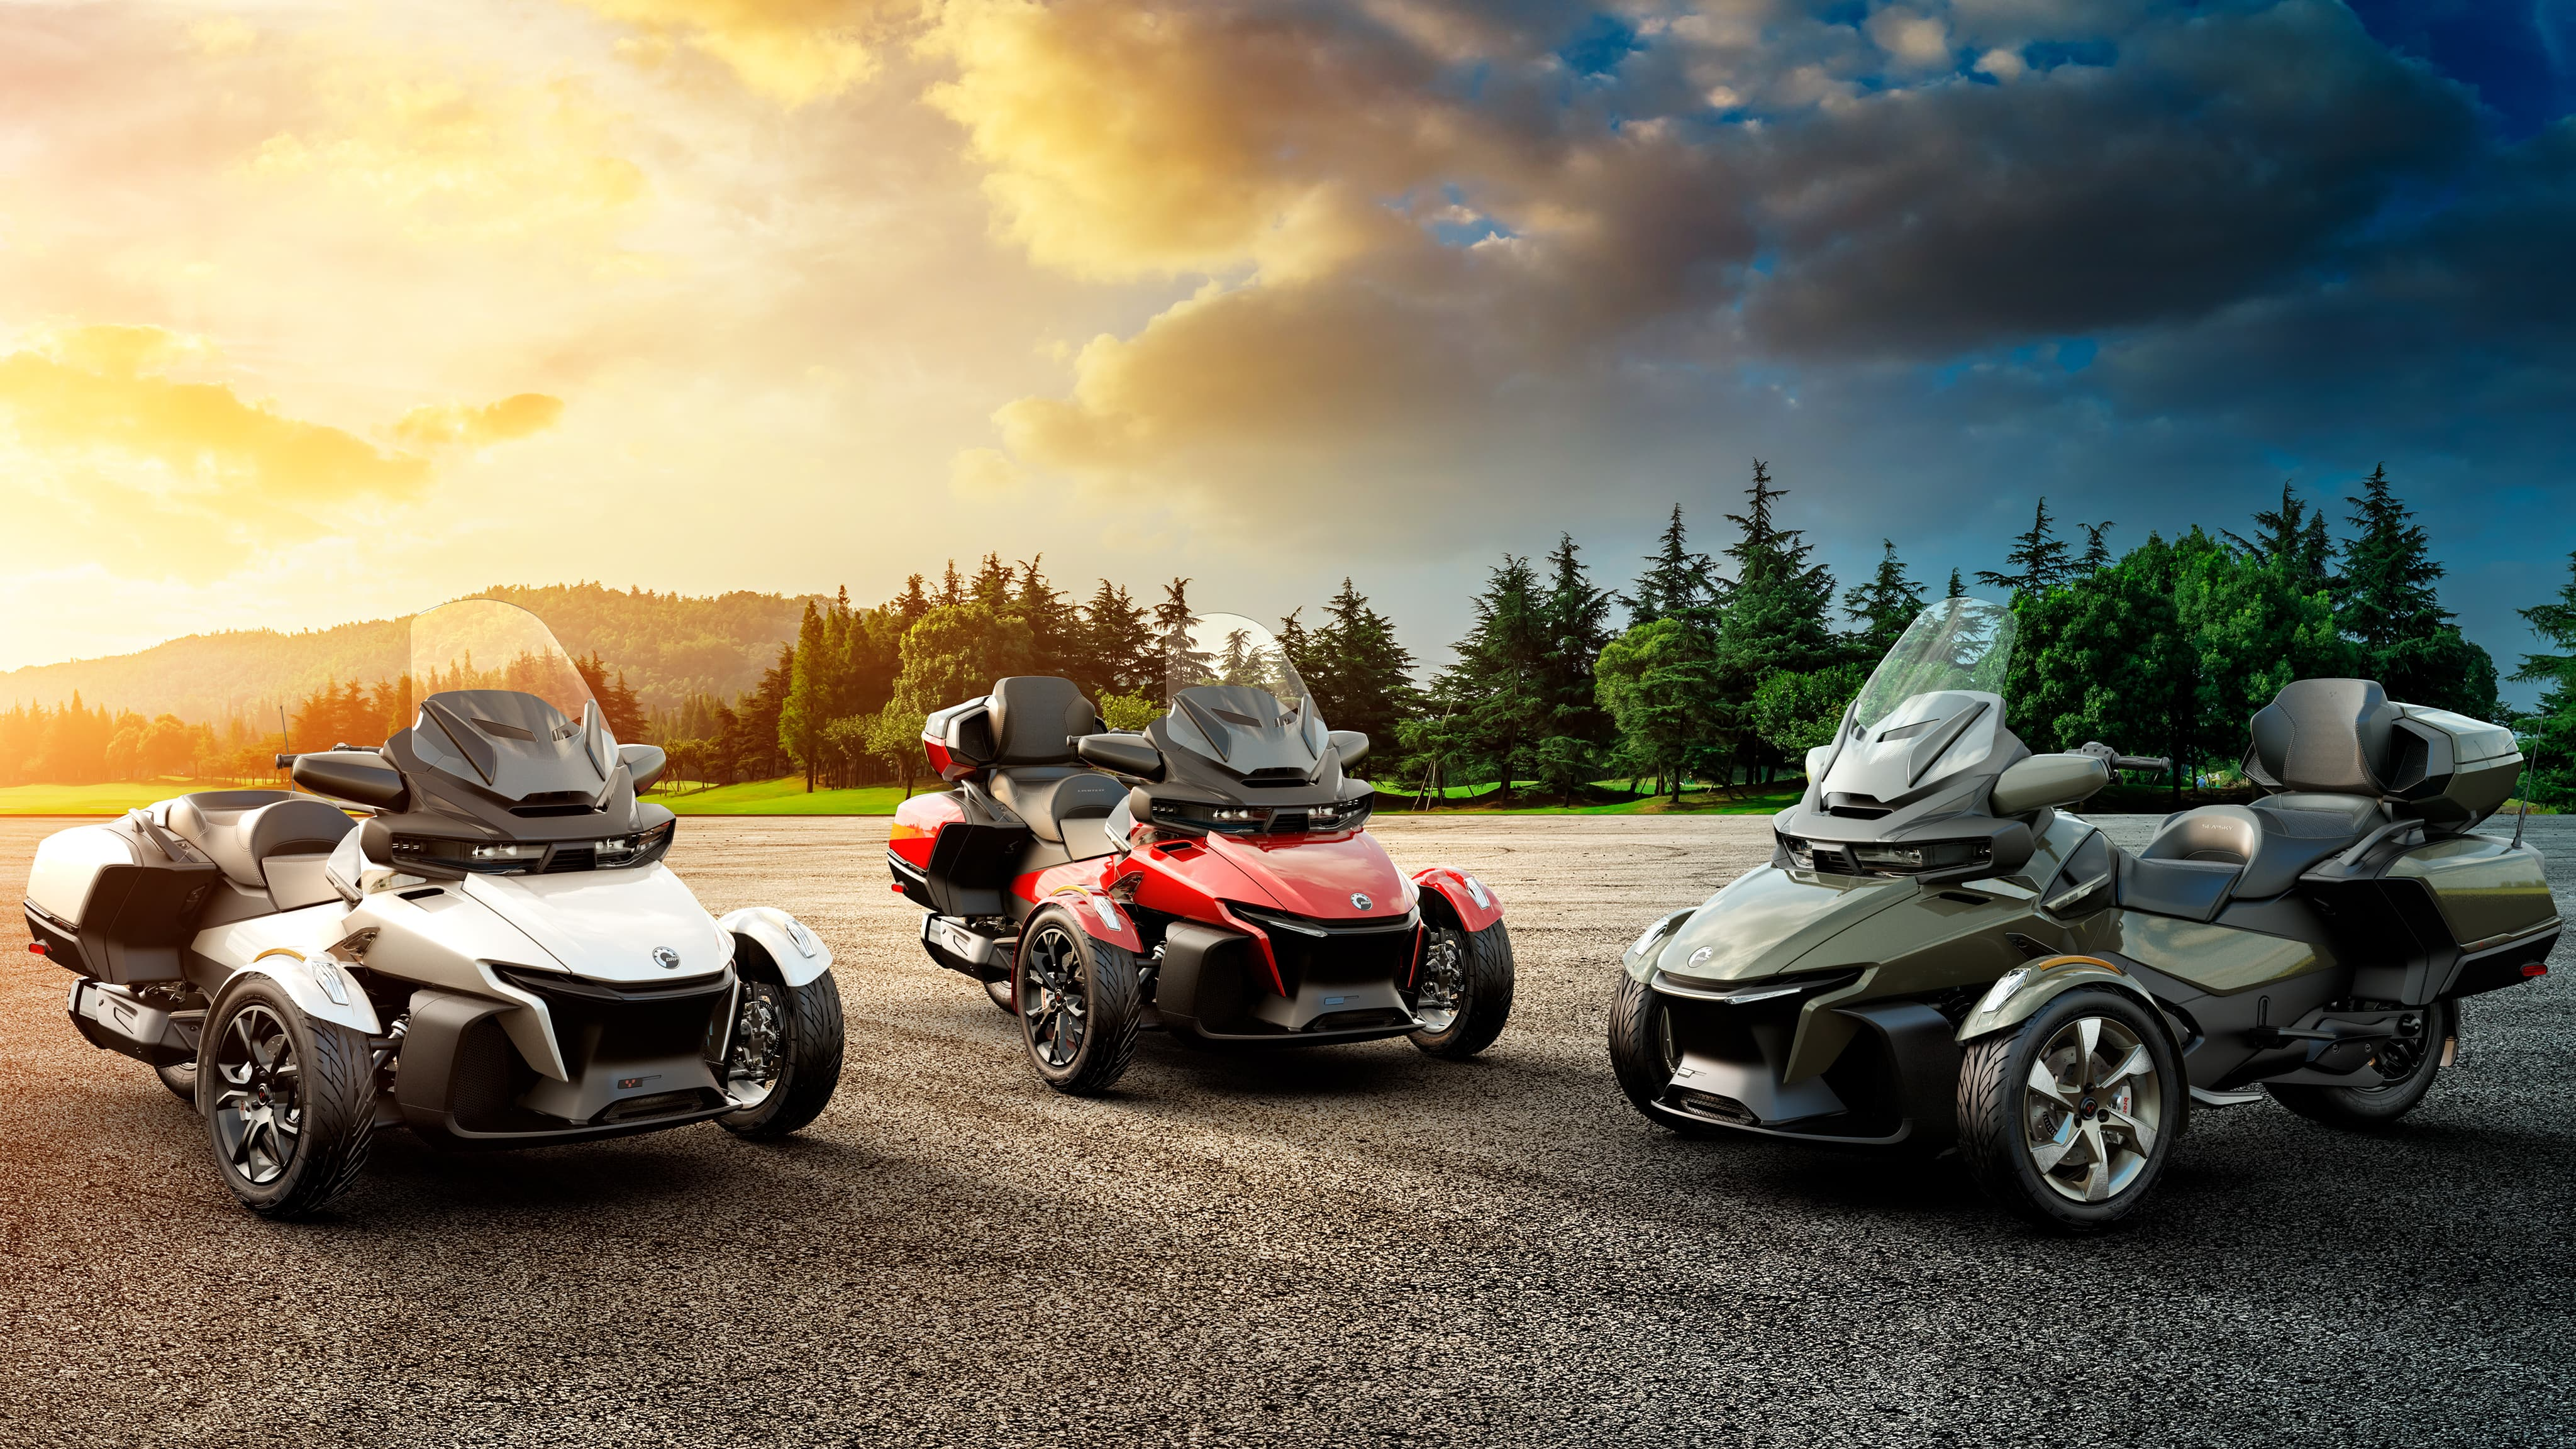 2021 Can-Am Spyder RT familie